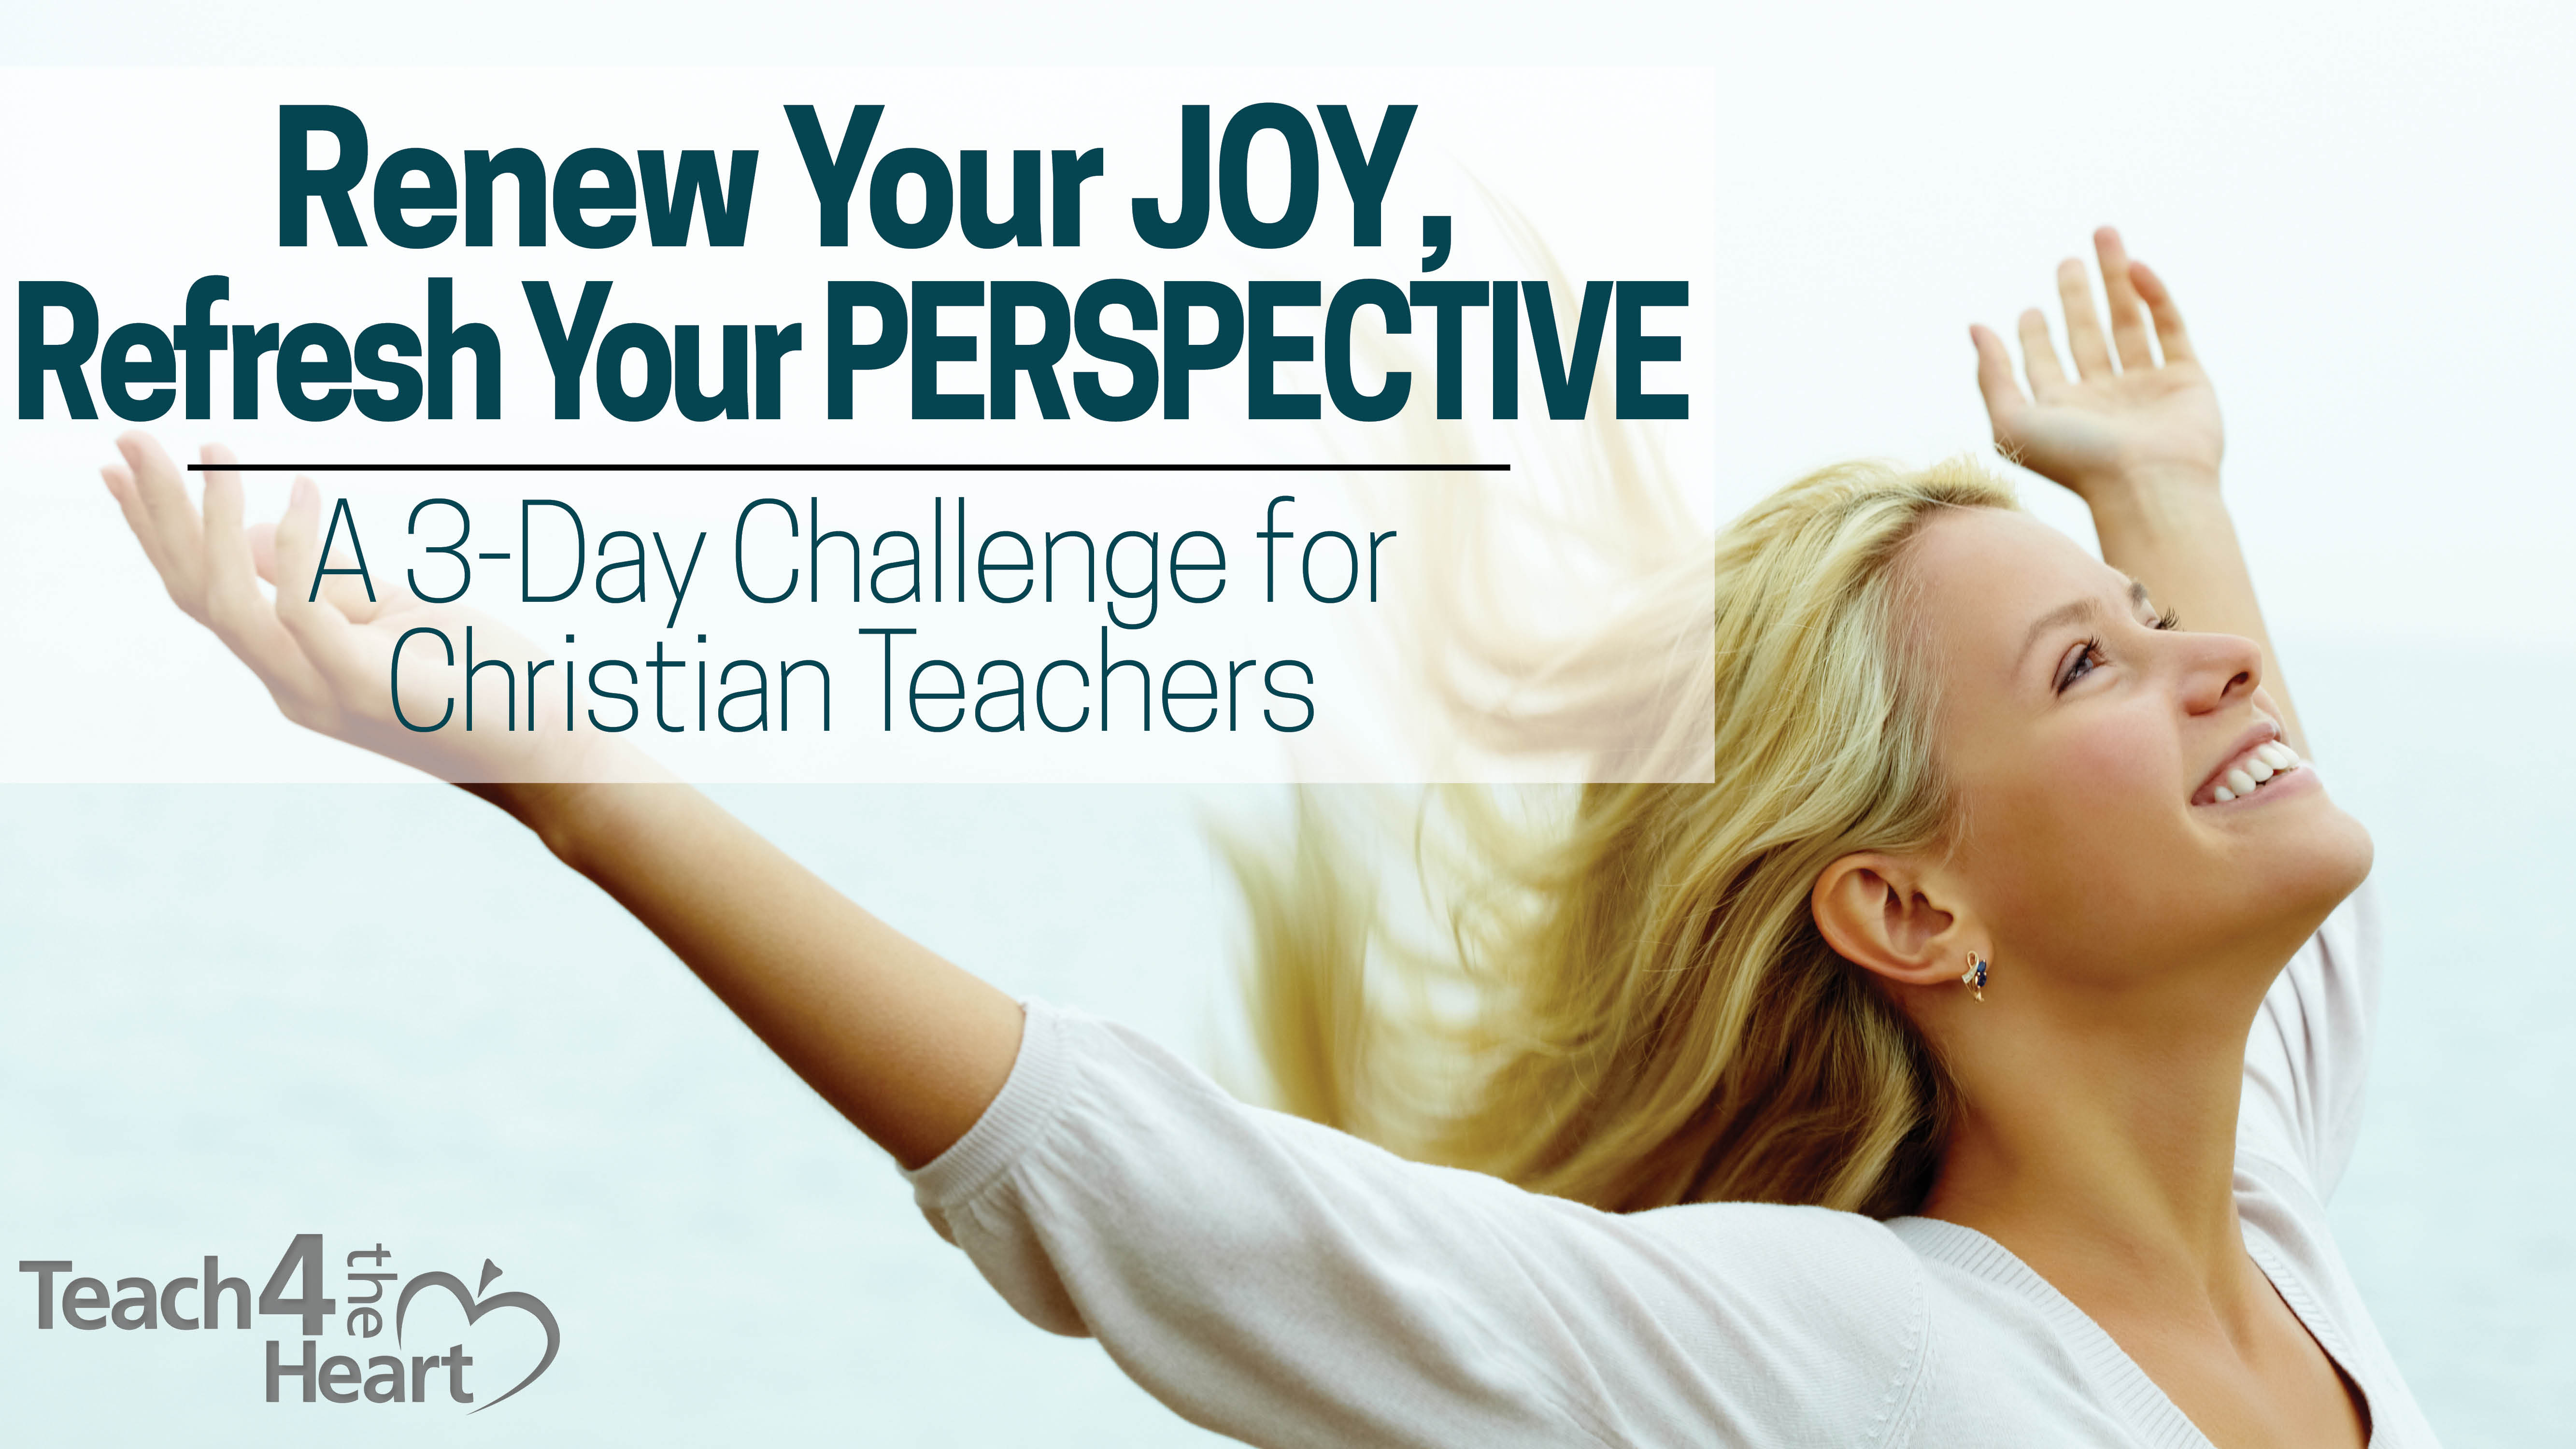 renew your joy, refresh your perspective: a 3-day challenge for Christian teachers